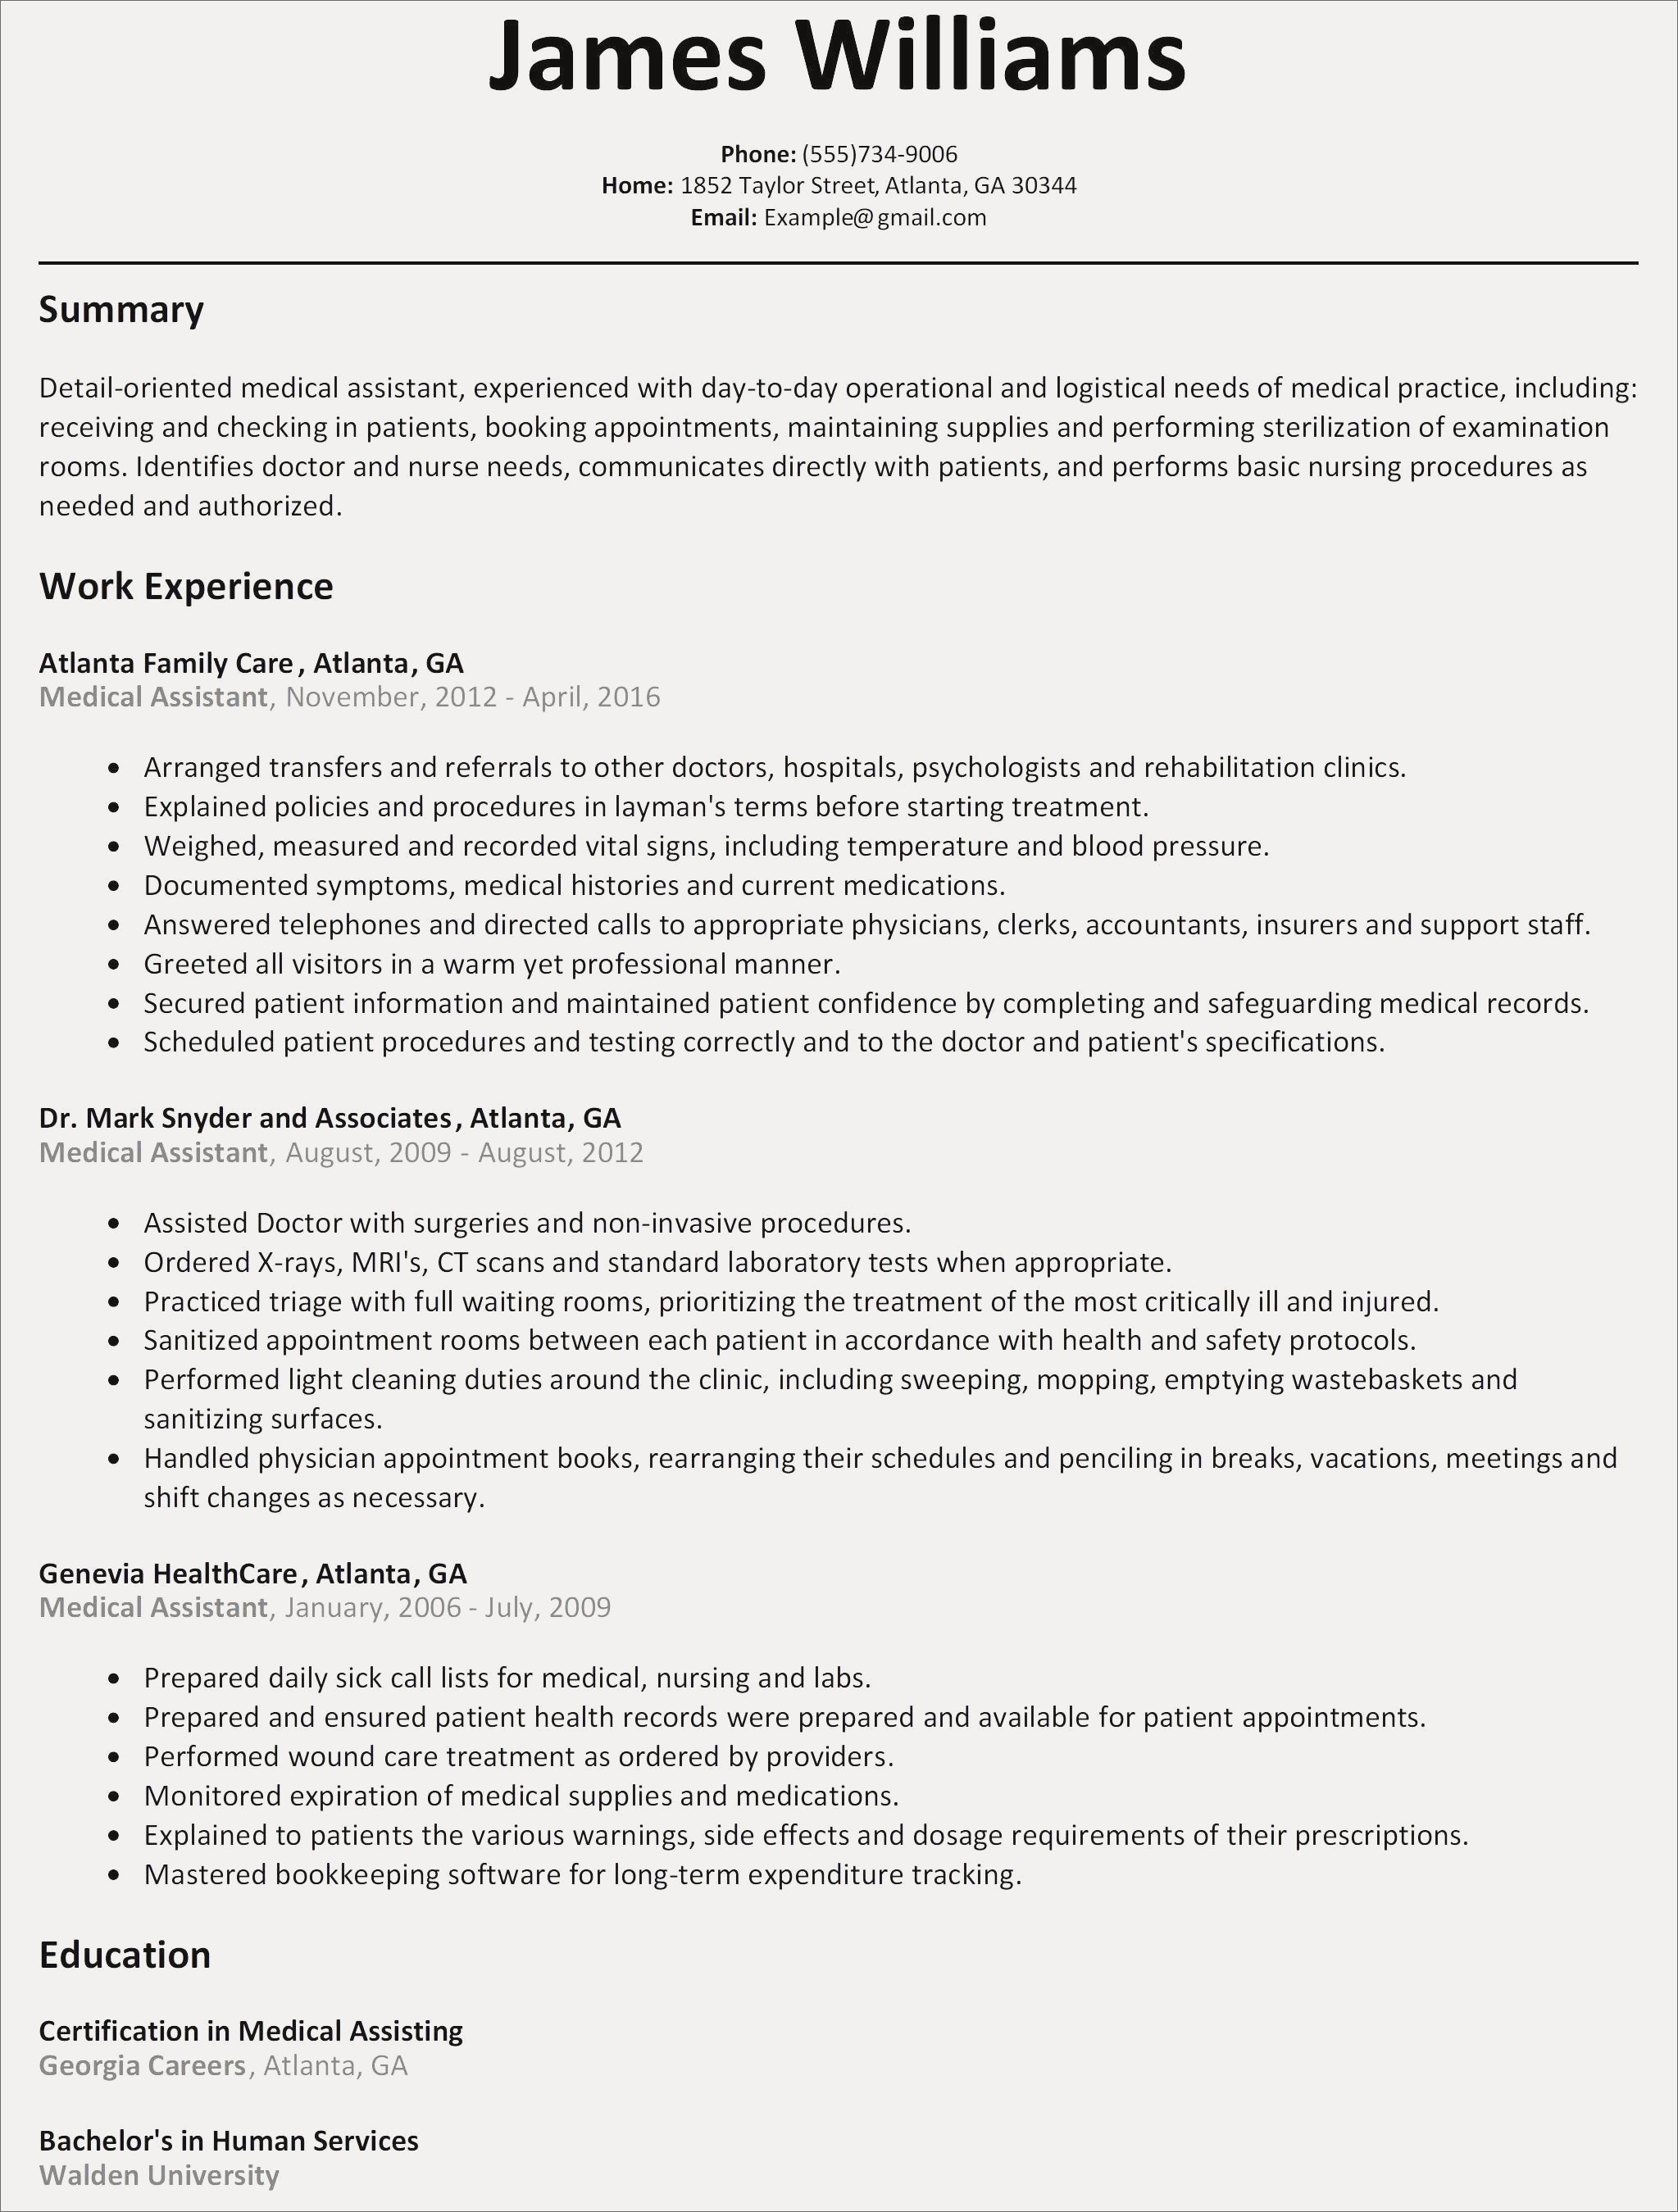 electrical resume template Collection-Unique Electrical Engineering Resume 7-s